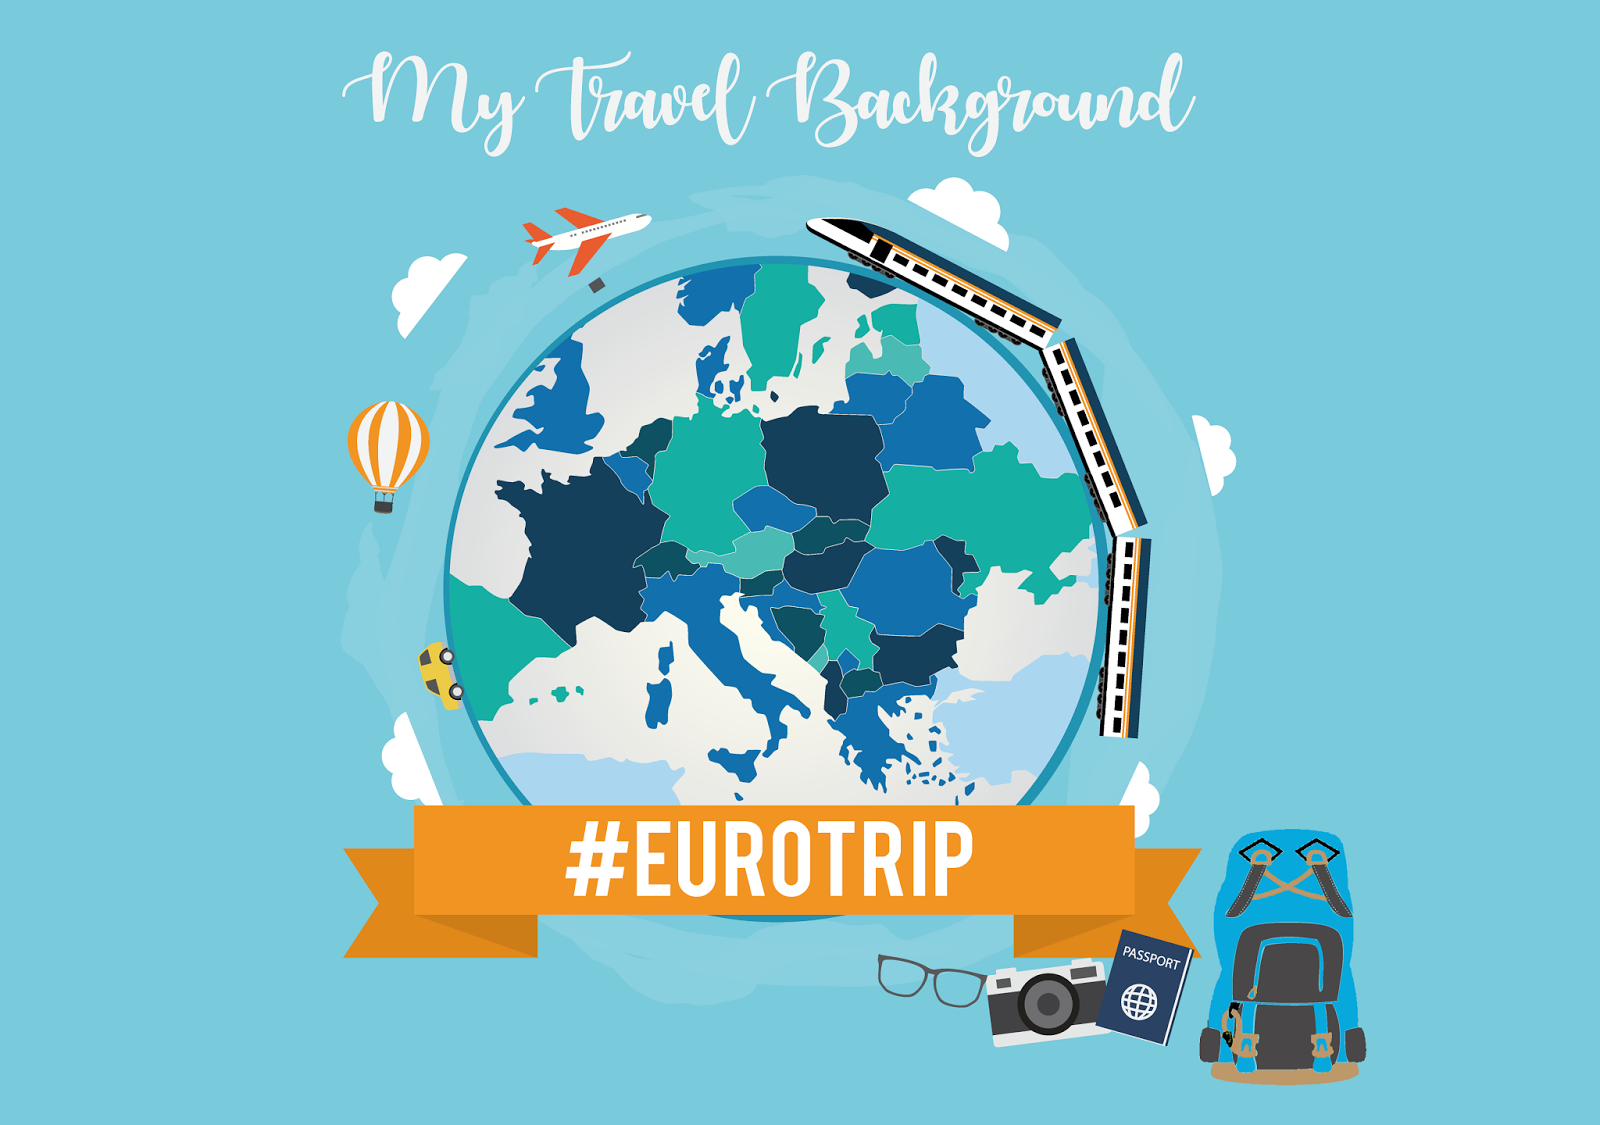 My Travel Background : Voyage en interrail en Europe de l'Est